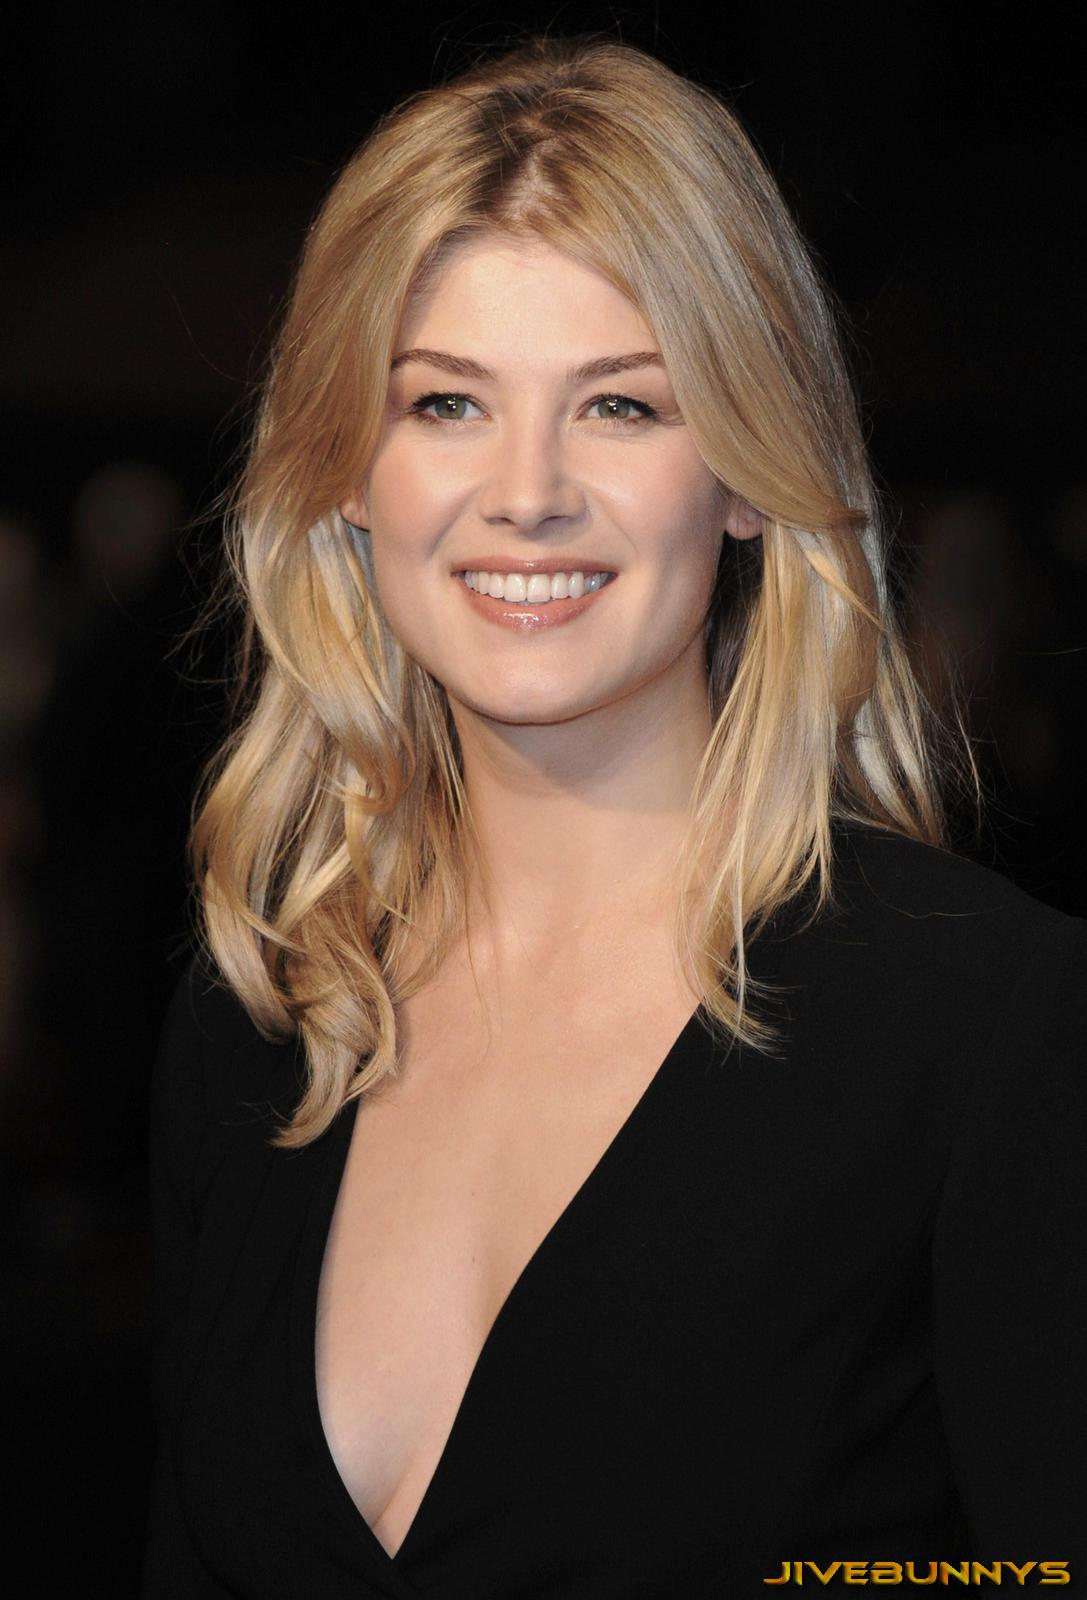 Rosamund Pike: biography and career | Film ActressesRosamund Pike 2014